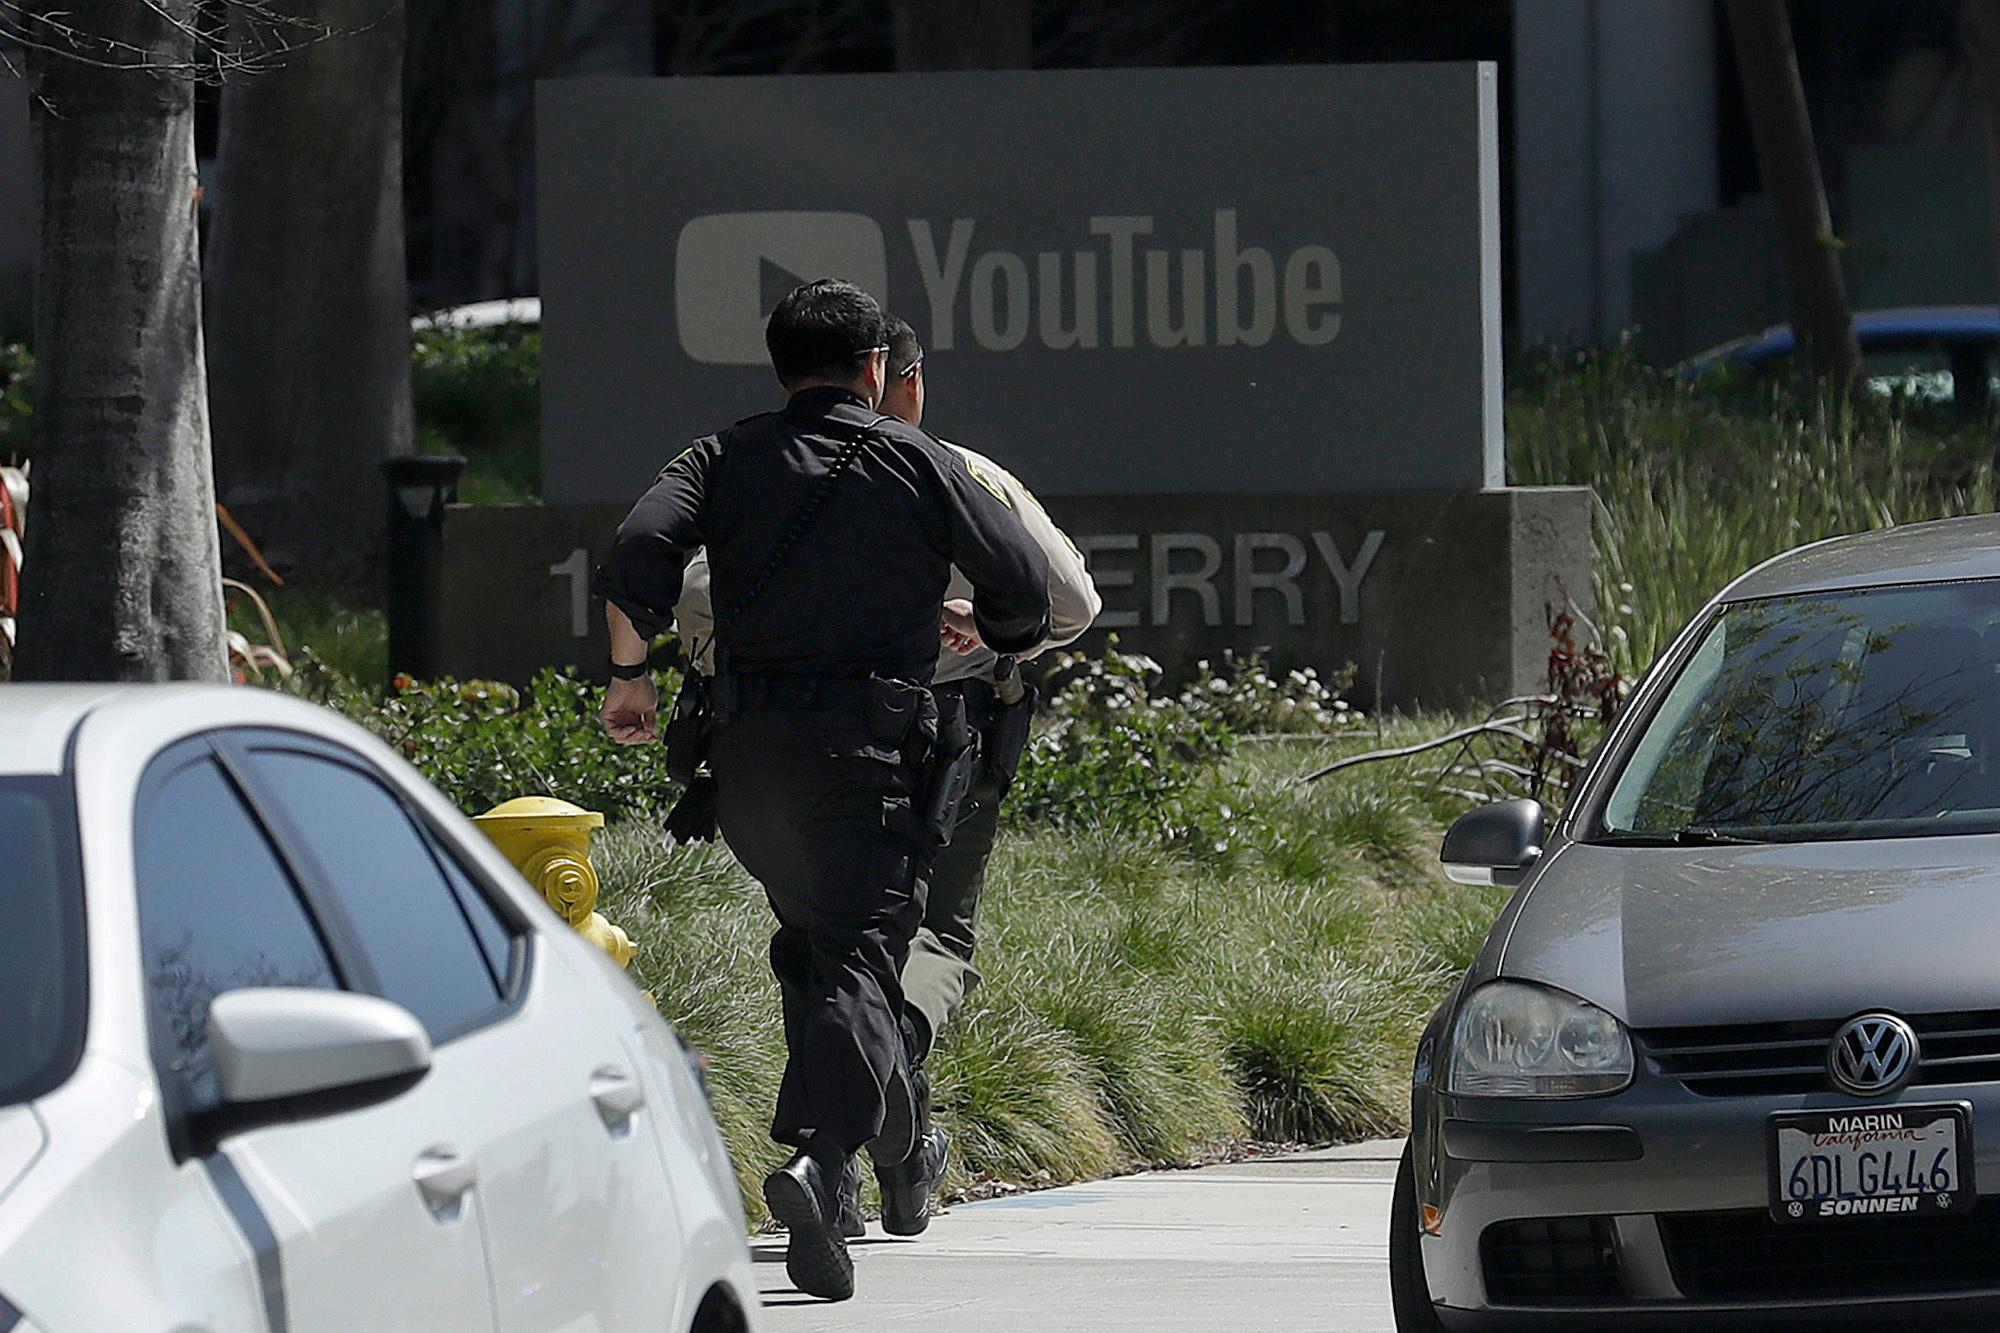 Officers run toward a YouTube office in San Bruno, Calif., Tuesday, April 3, 2018. Police and federal officials responded a shooting Tuesday at YouTube headquarters in Northern California. (AP Photo/Jeff Chiu)